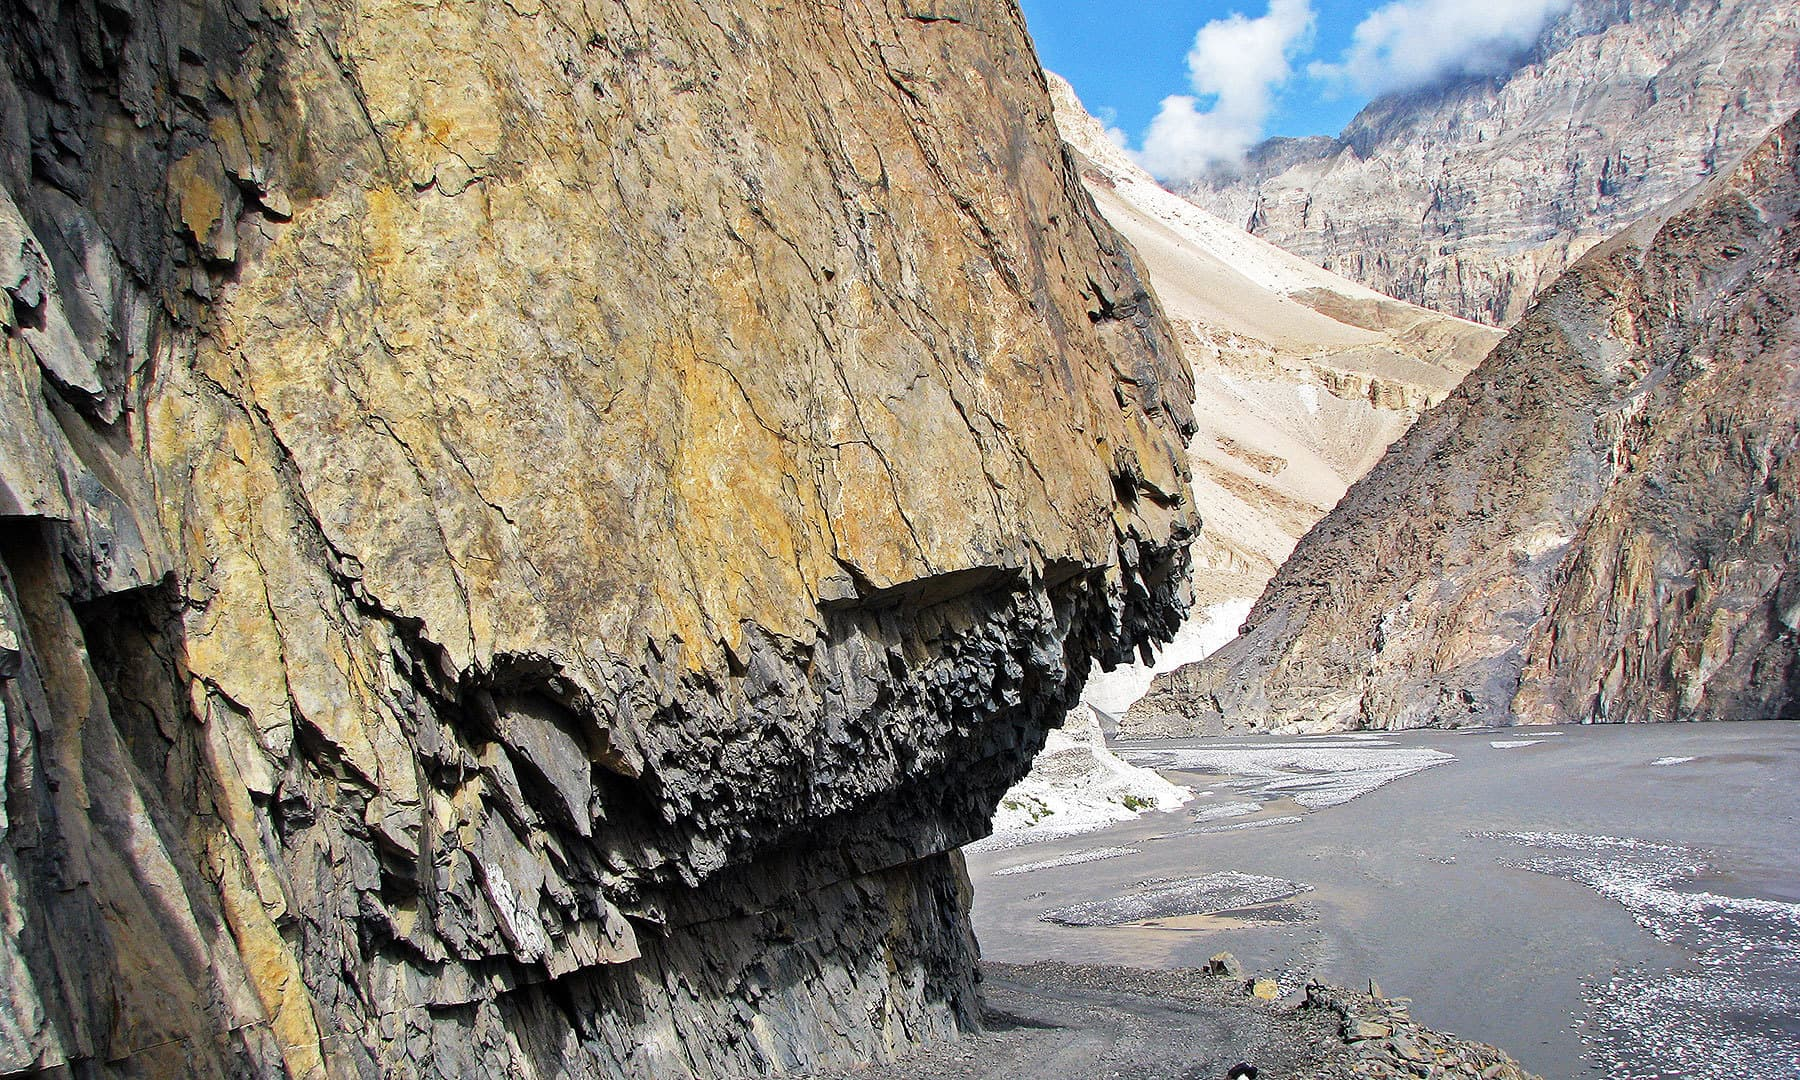 The jeep road into Shimshal, at places, has been cut through solid rock.